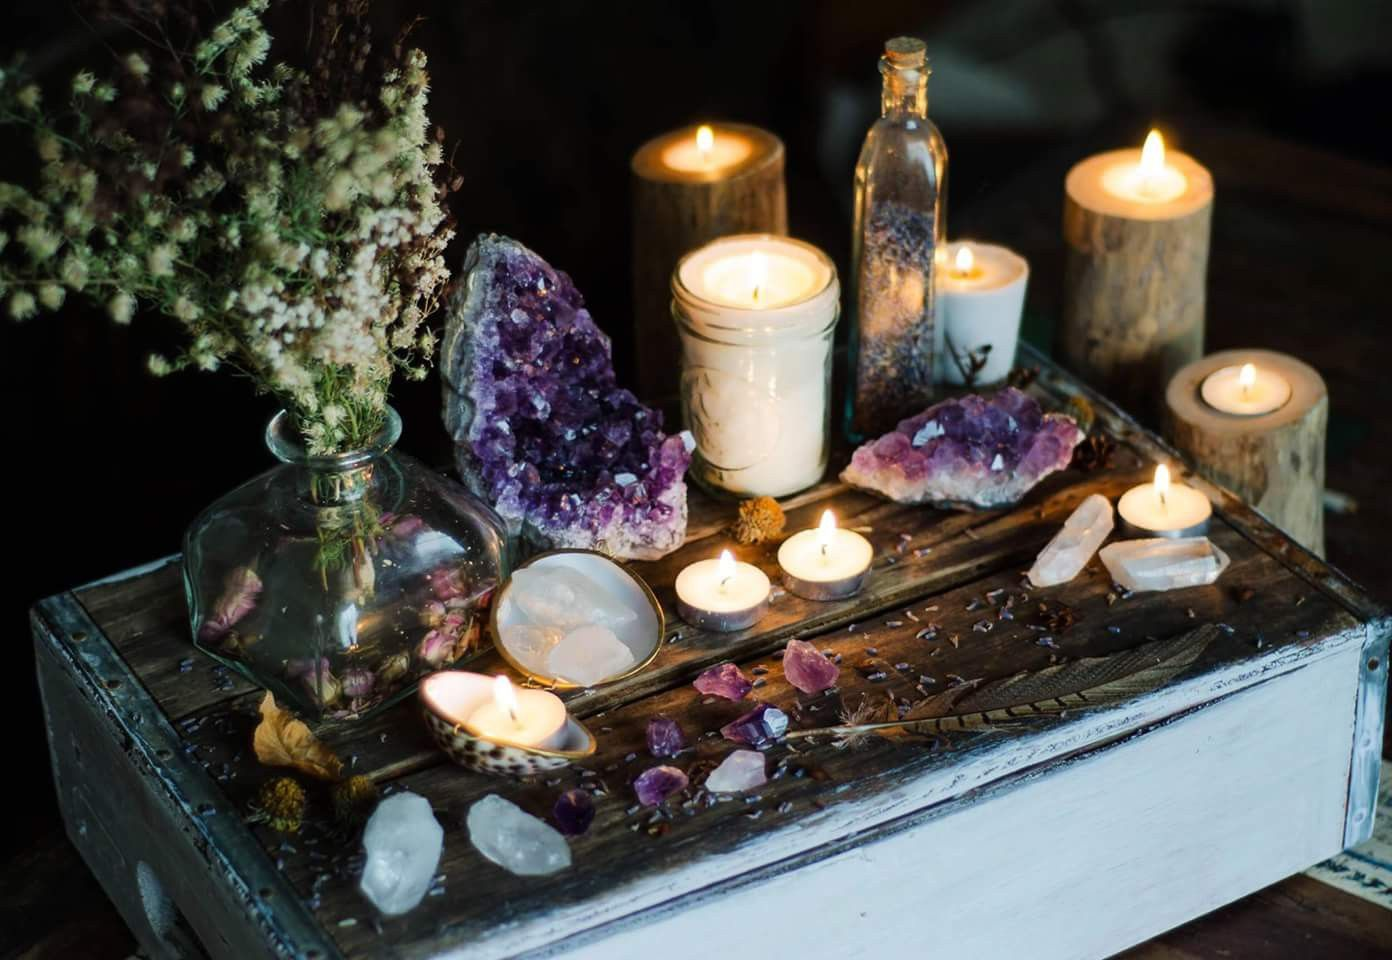 Witches altar image by Michelle Mi-Belle on Ancient Wisdom